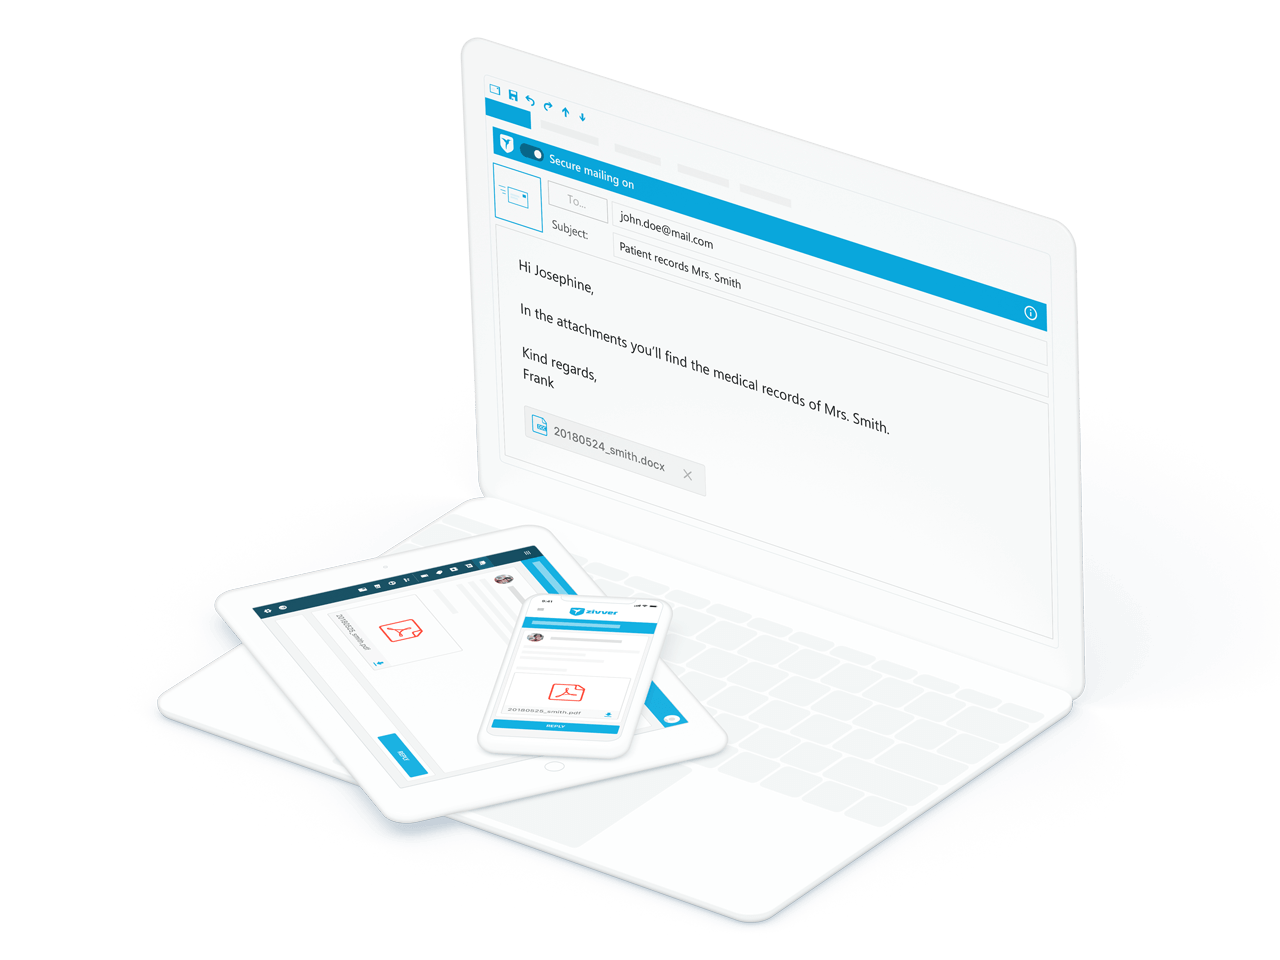 You simply send large files from your familiar email programme, such as Outlook